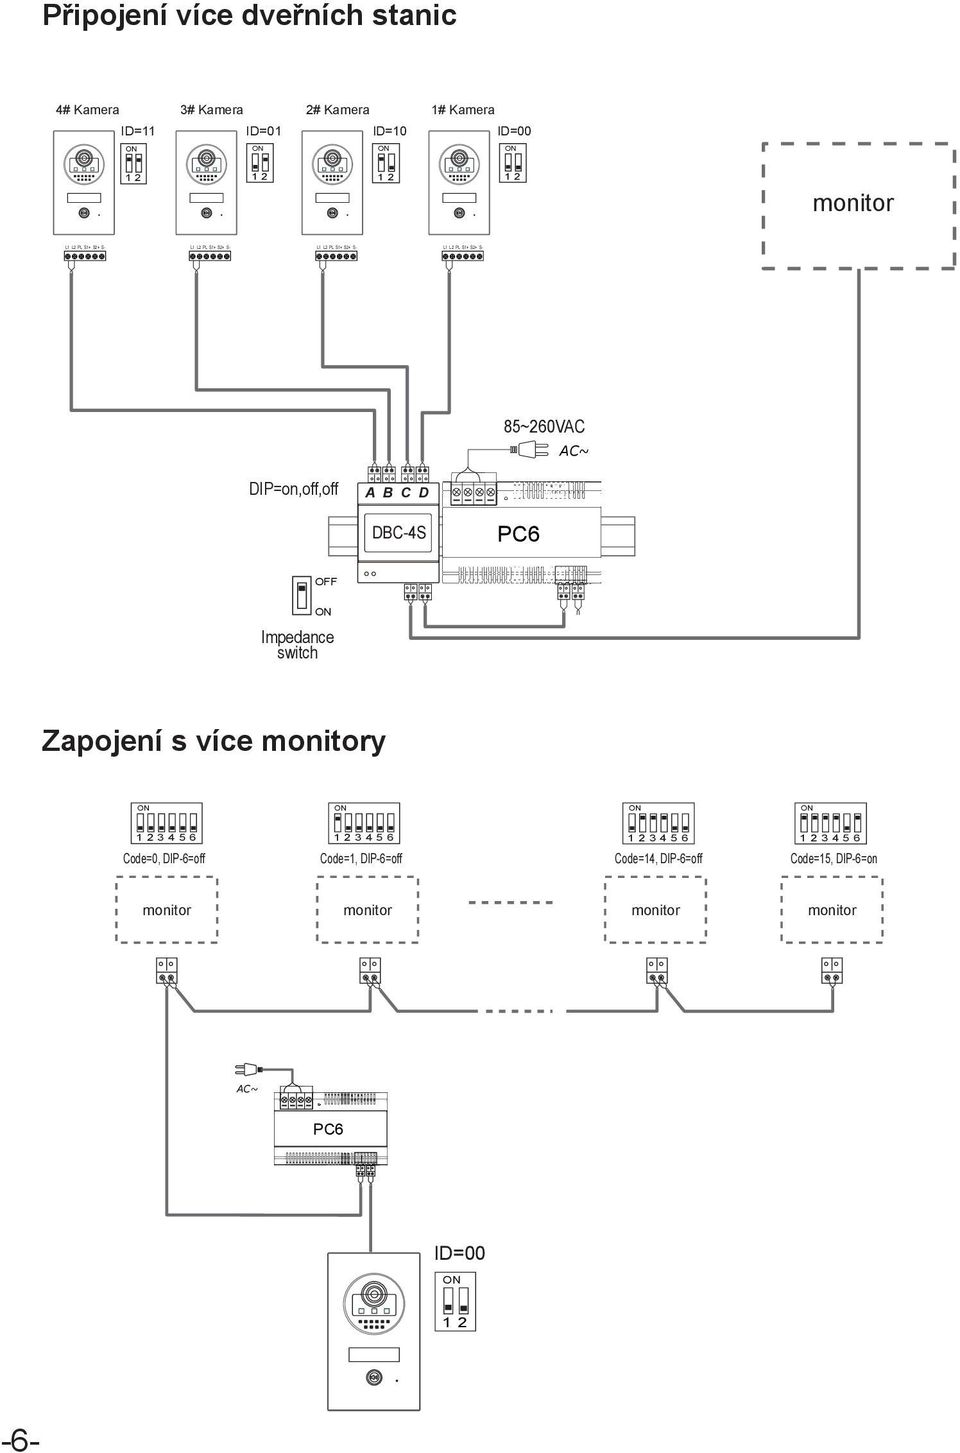 S2+ S- 85~260VAC AC~ DIP=on,off,off A B C D DBC-4S PC6 OFF Impedance switch Zapojení s